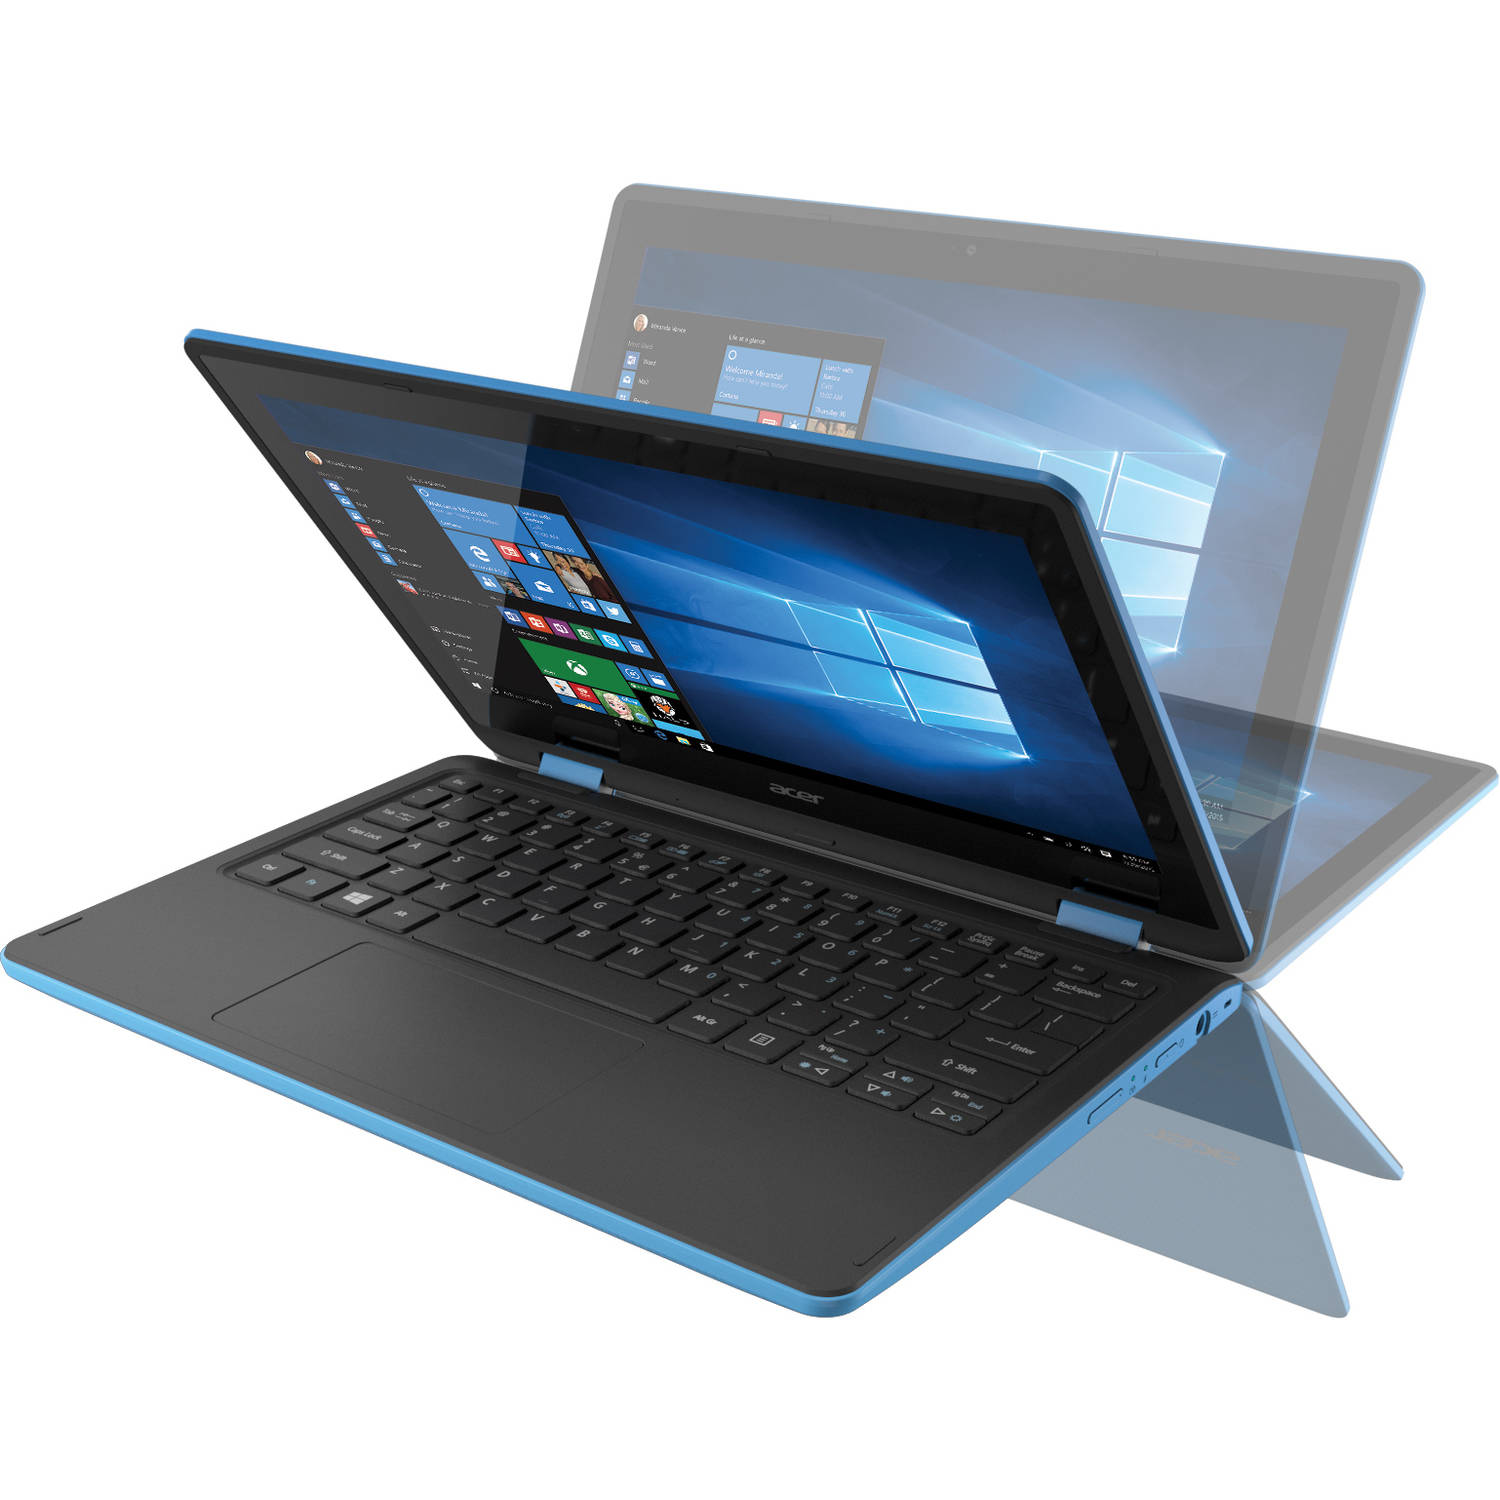 "Acer Sky Blue 11.6"" R11 R3-131T-C1YF Touchscreen 2-in-1 Convertible Laptop PC with Intel Celeron N3050 Processor, 2GB Memory, 32GB eMMC and Windows 10"